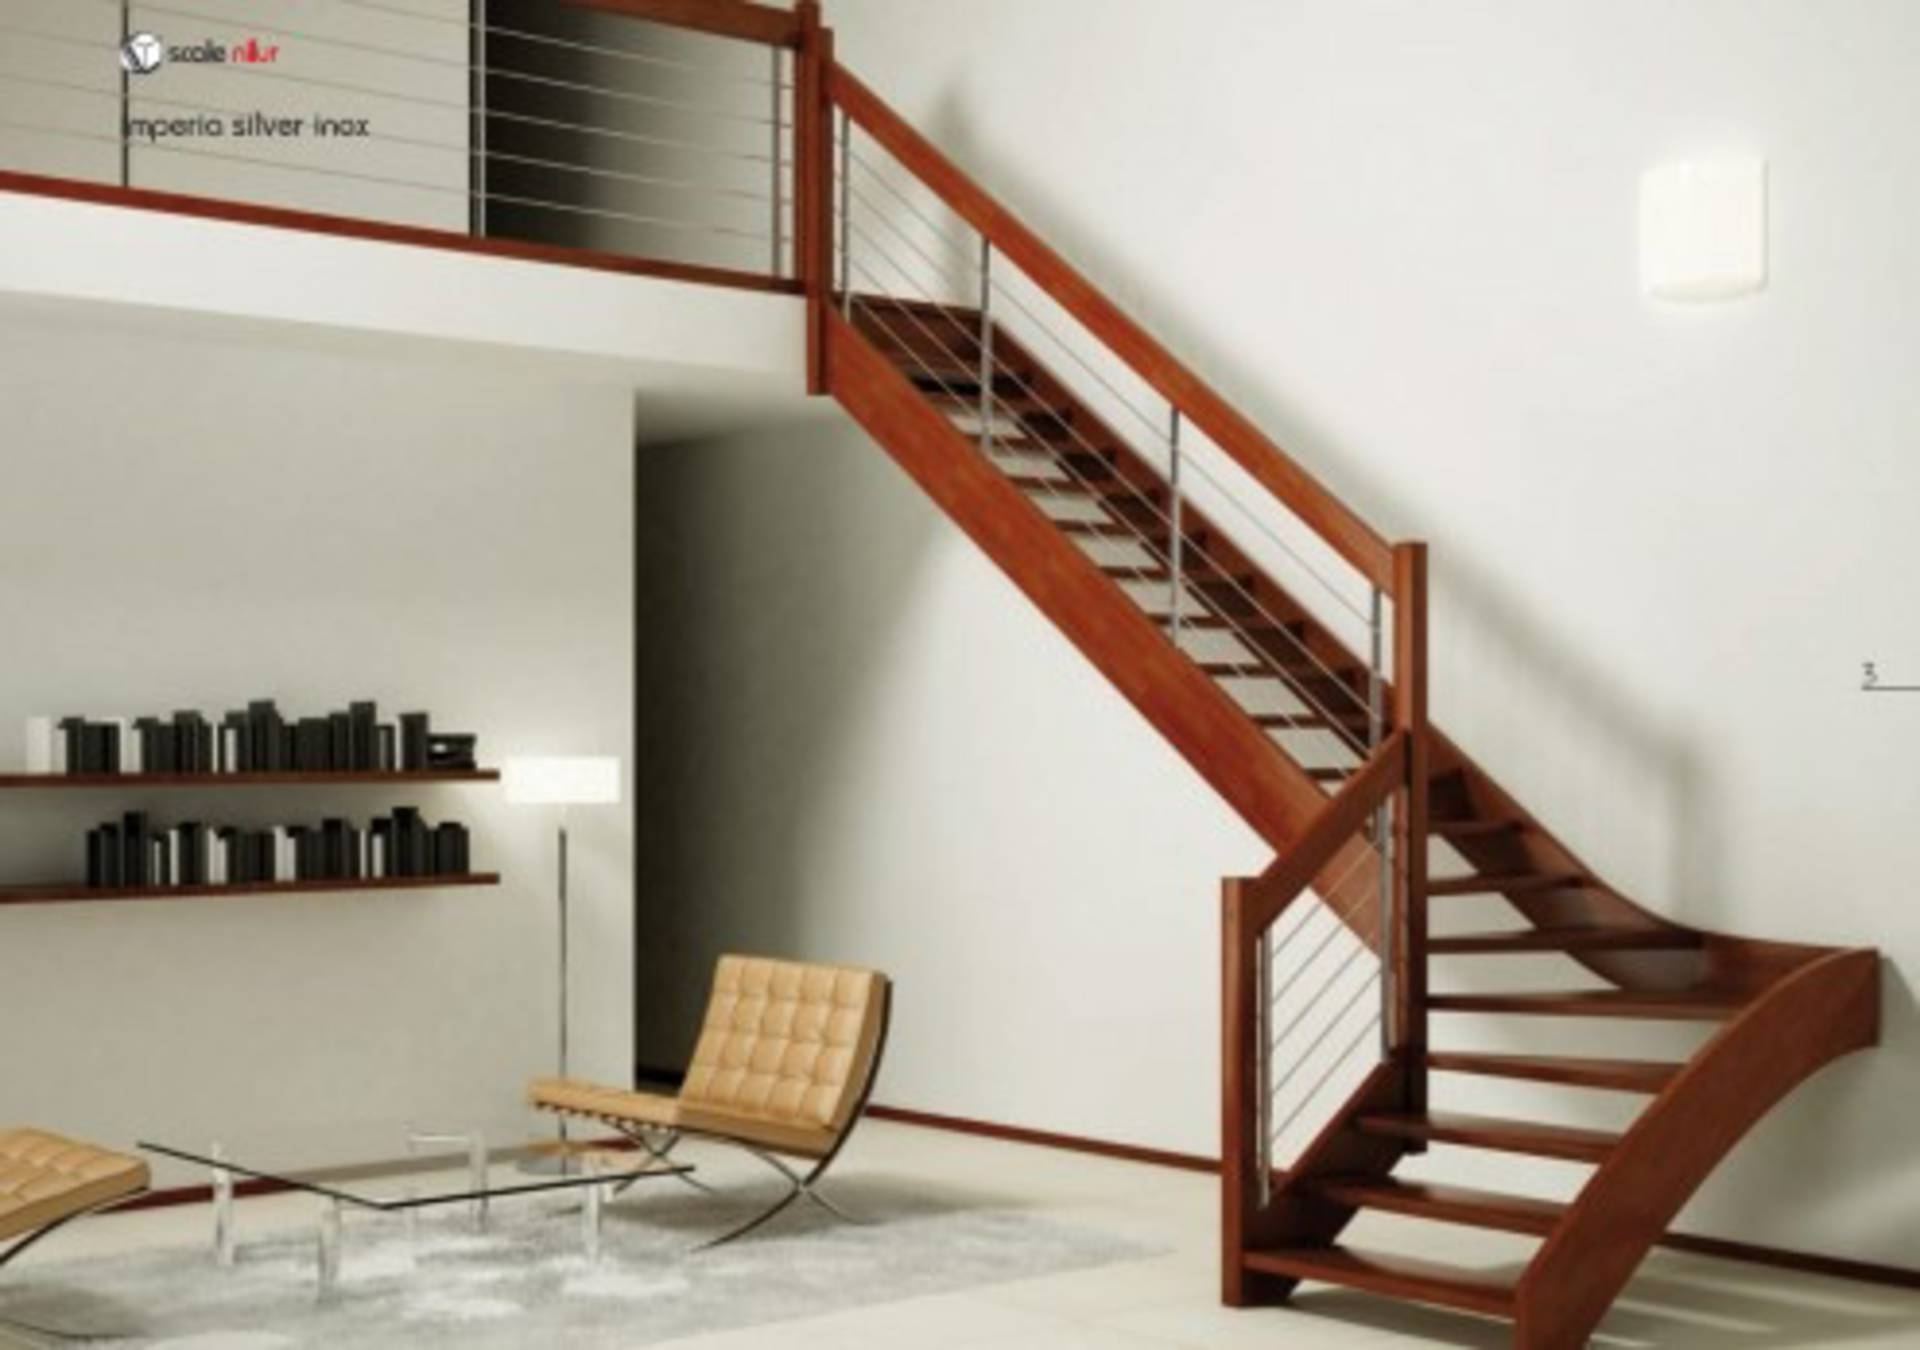 Stair Design Ideas For Your Home By Scale Nilur ...